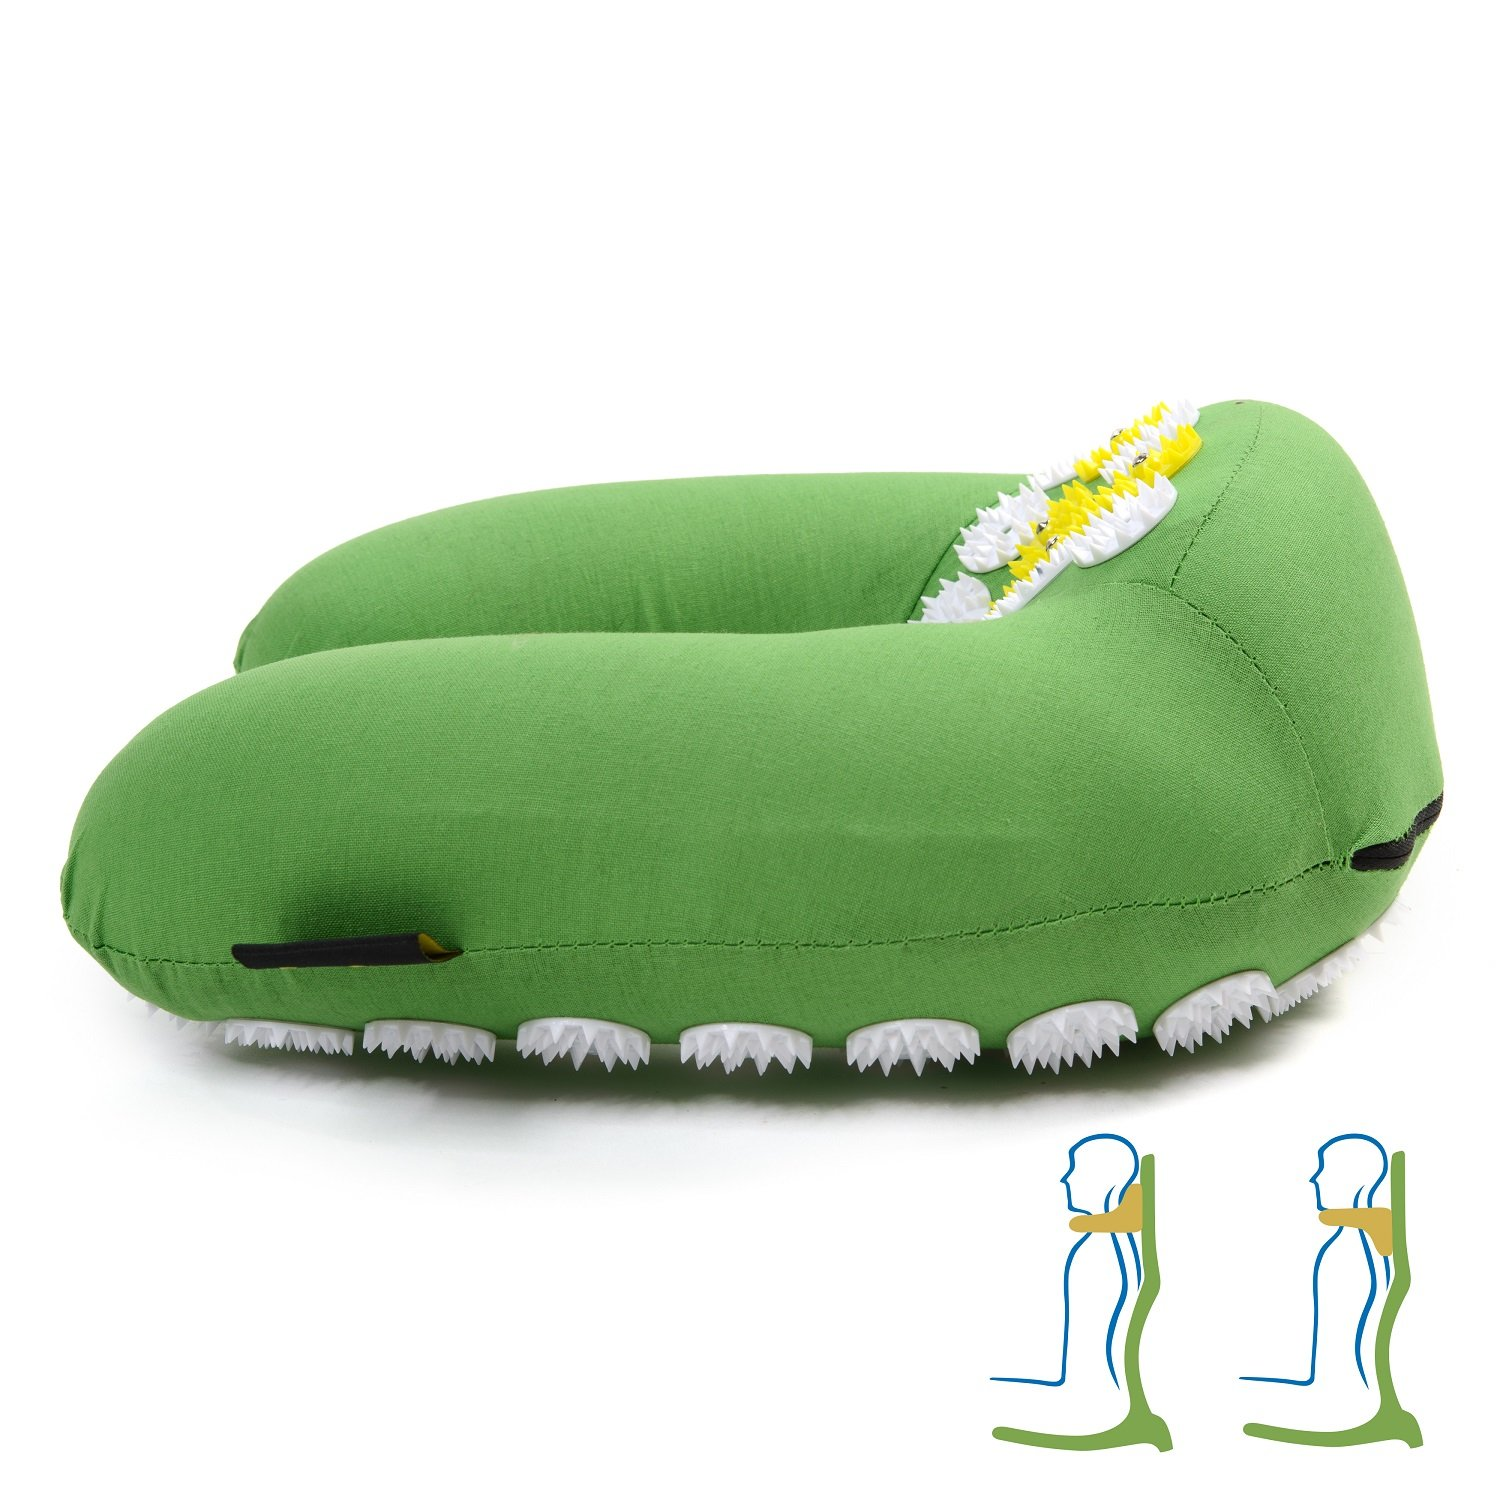 ZenGuru Best Acupressure U-Shaped Neck Pillow - Sale - Effective Remedy for Neck & Shoulders Pain and Stress Relief - with Magnet Therapy - Lifetime Money Back (Green)